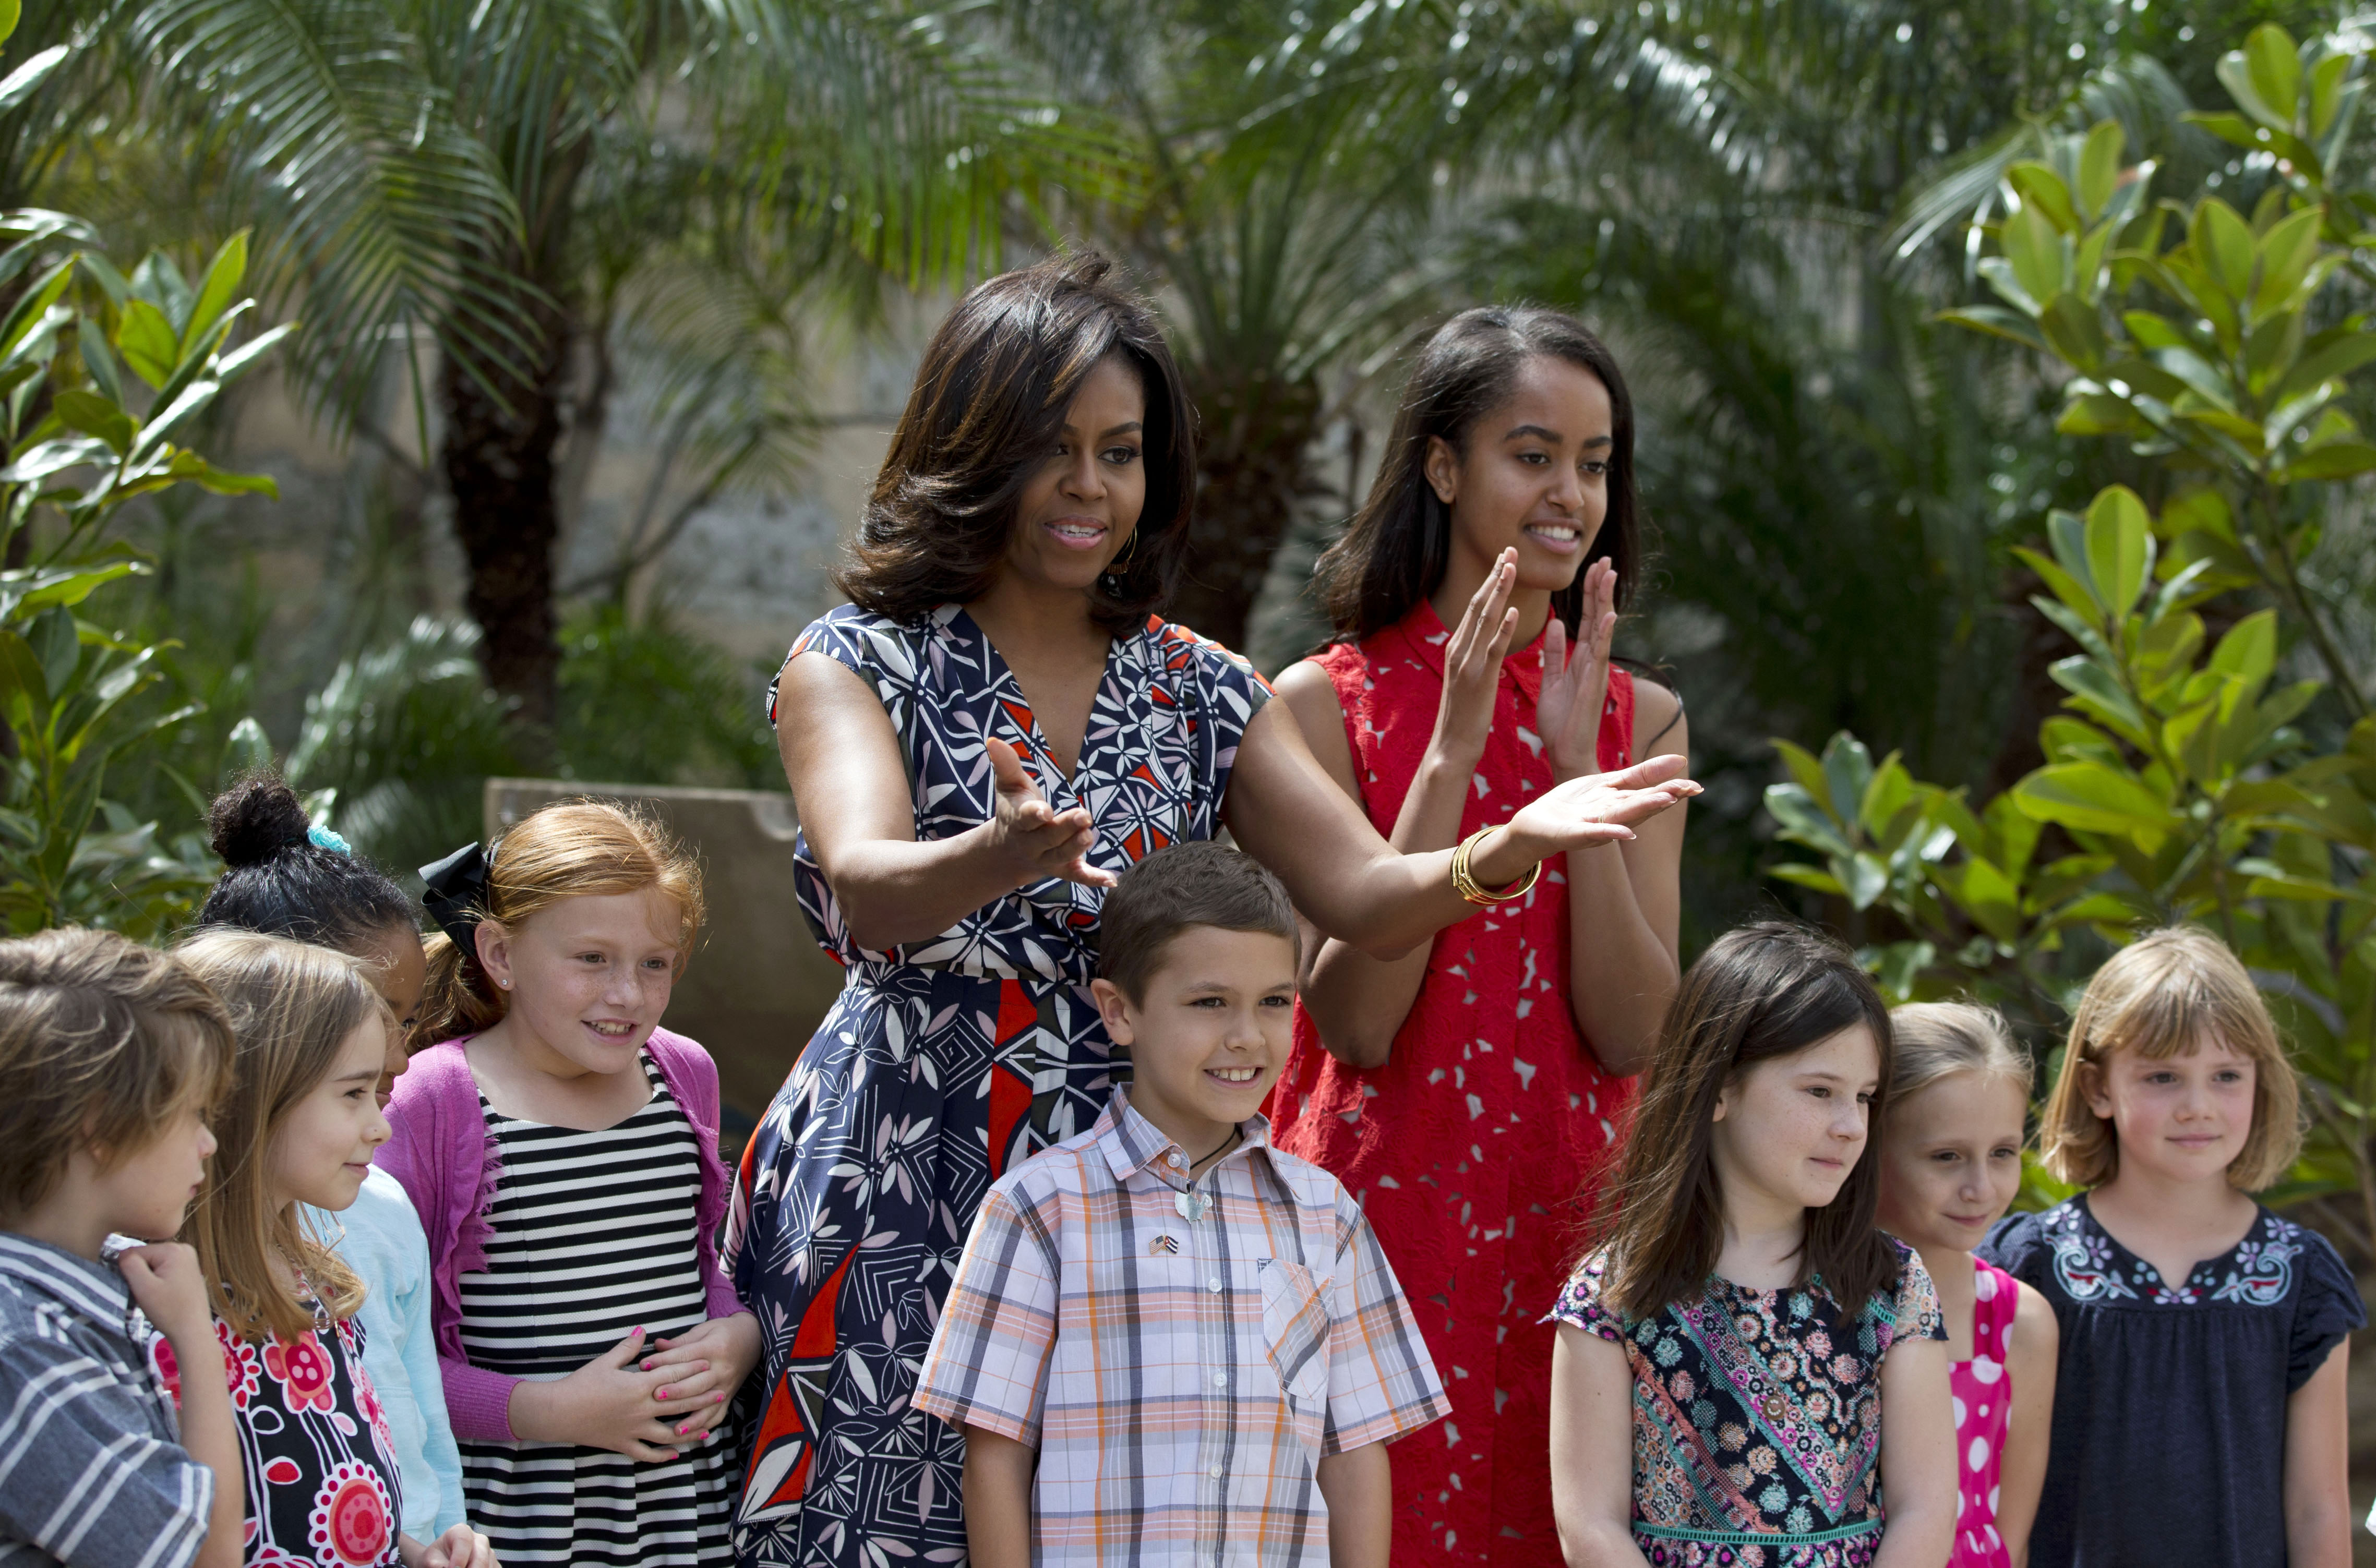 March 22, 2016                                First Lady Michelle Obama thanks embassy workers with her daughter Malia after dedicating two magnolia trees and a bench, at a small park  in Plaza de las Armas, Old Havana, Cuba.